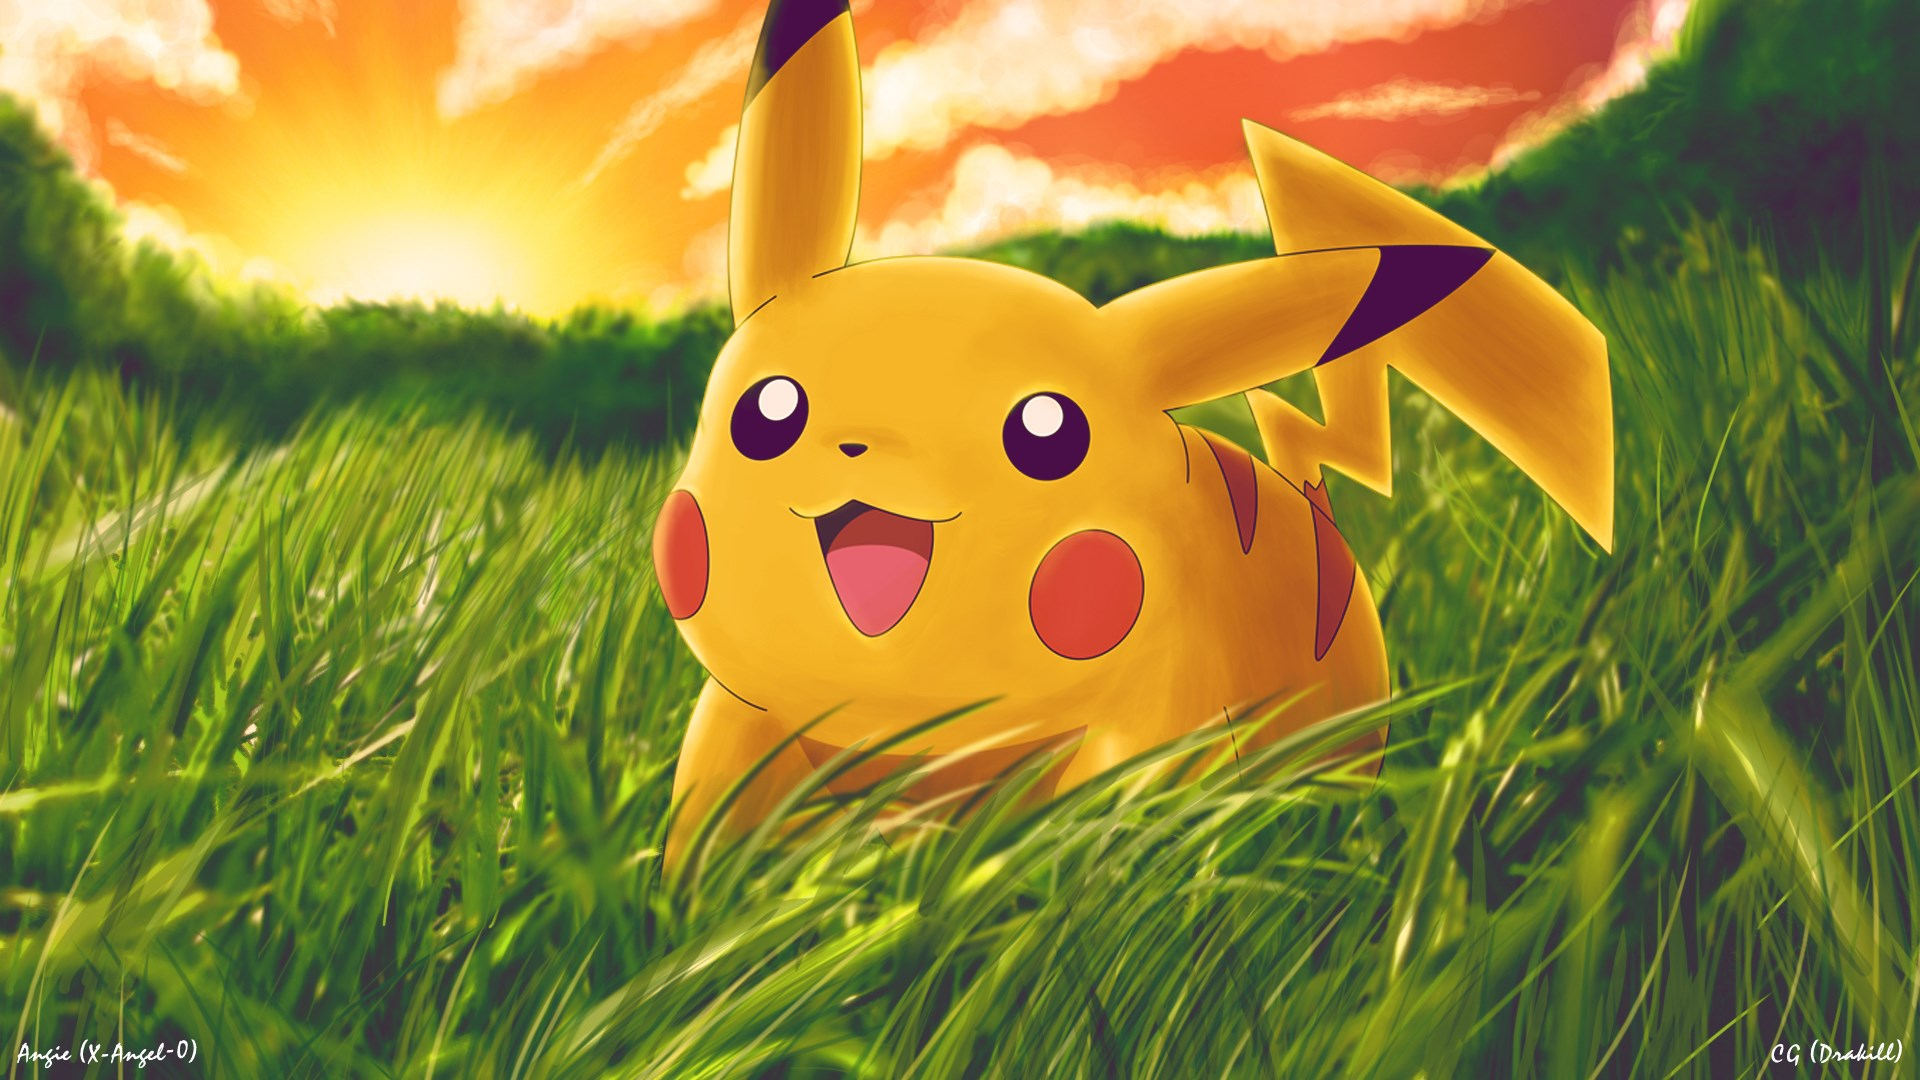 Pikachu Pokemon Cartoon Hd Wallpaper Wallpaper List 1920x1080